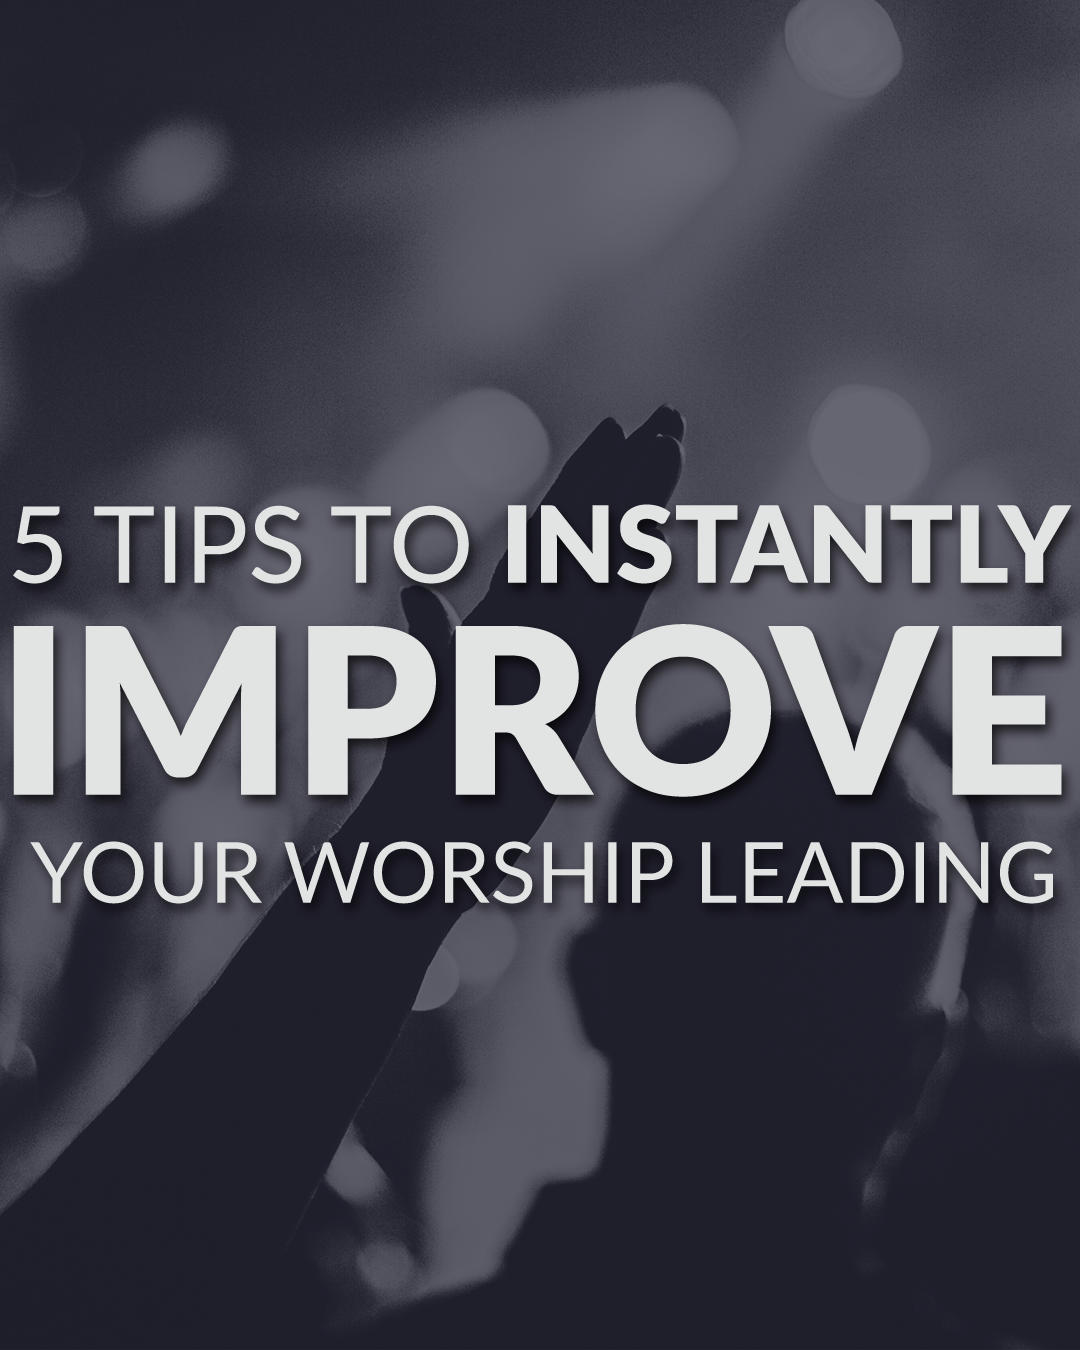 5 Tips to Instantly Improve your Worship leading